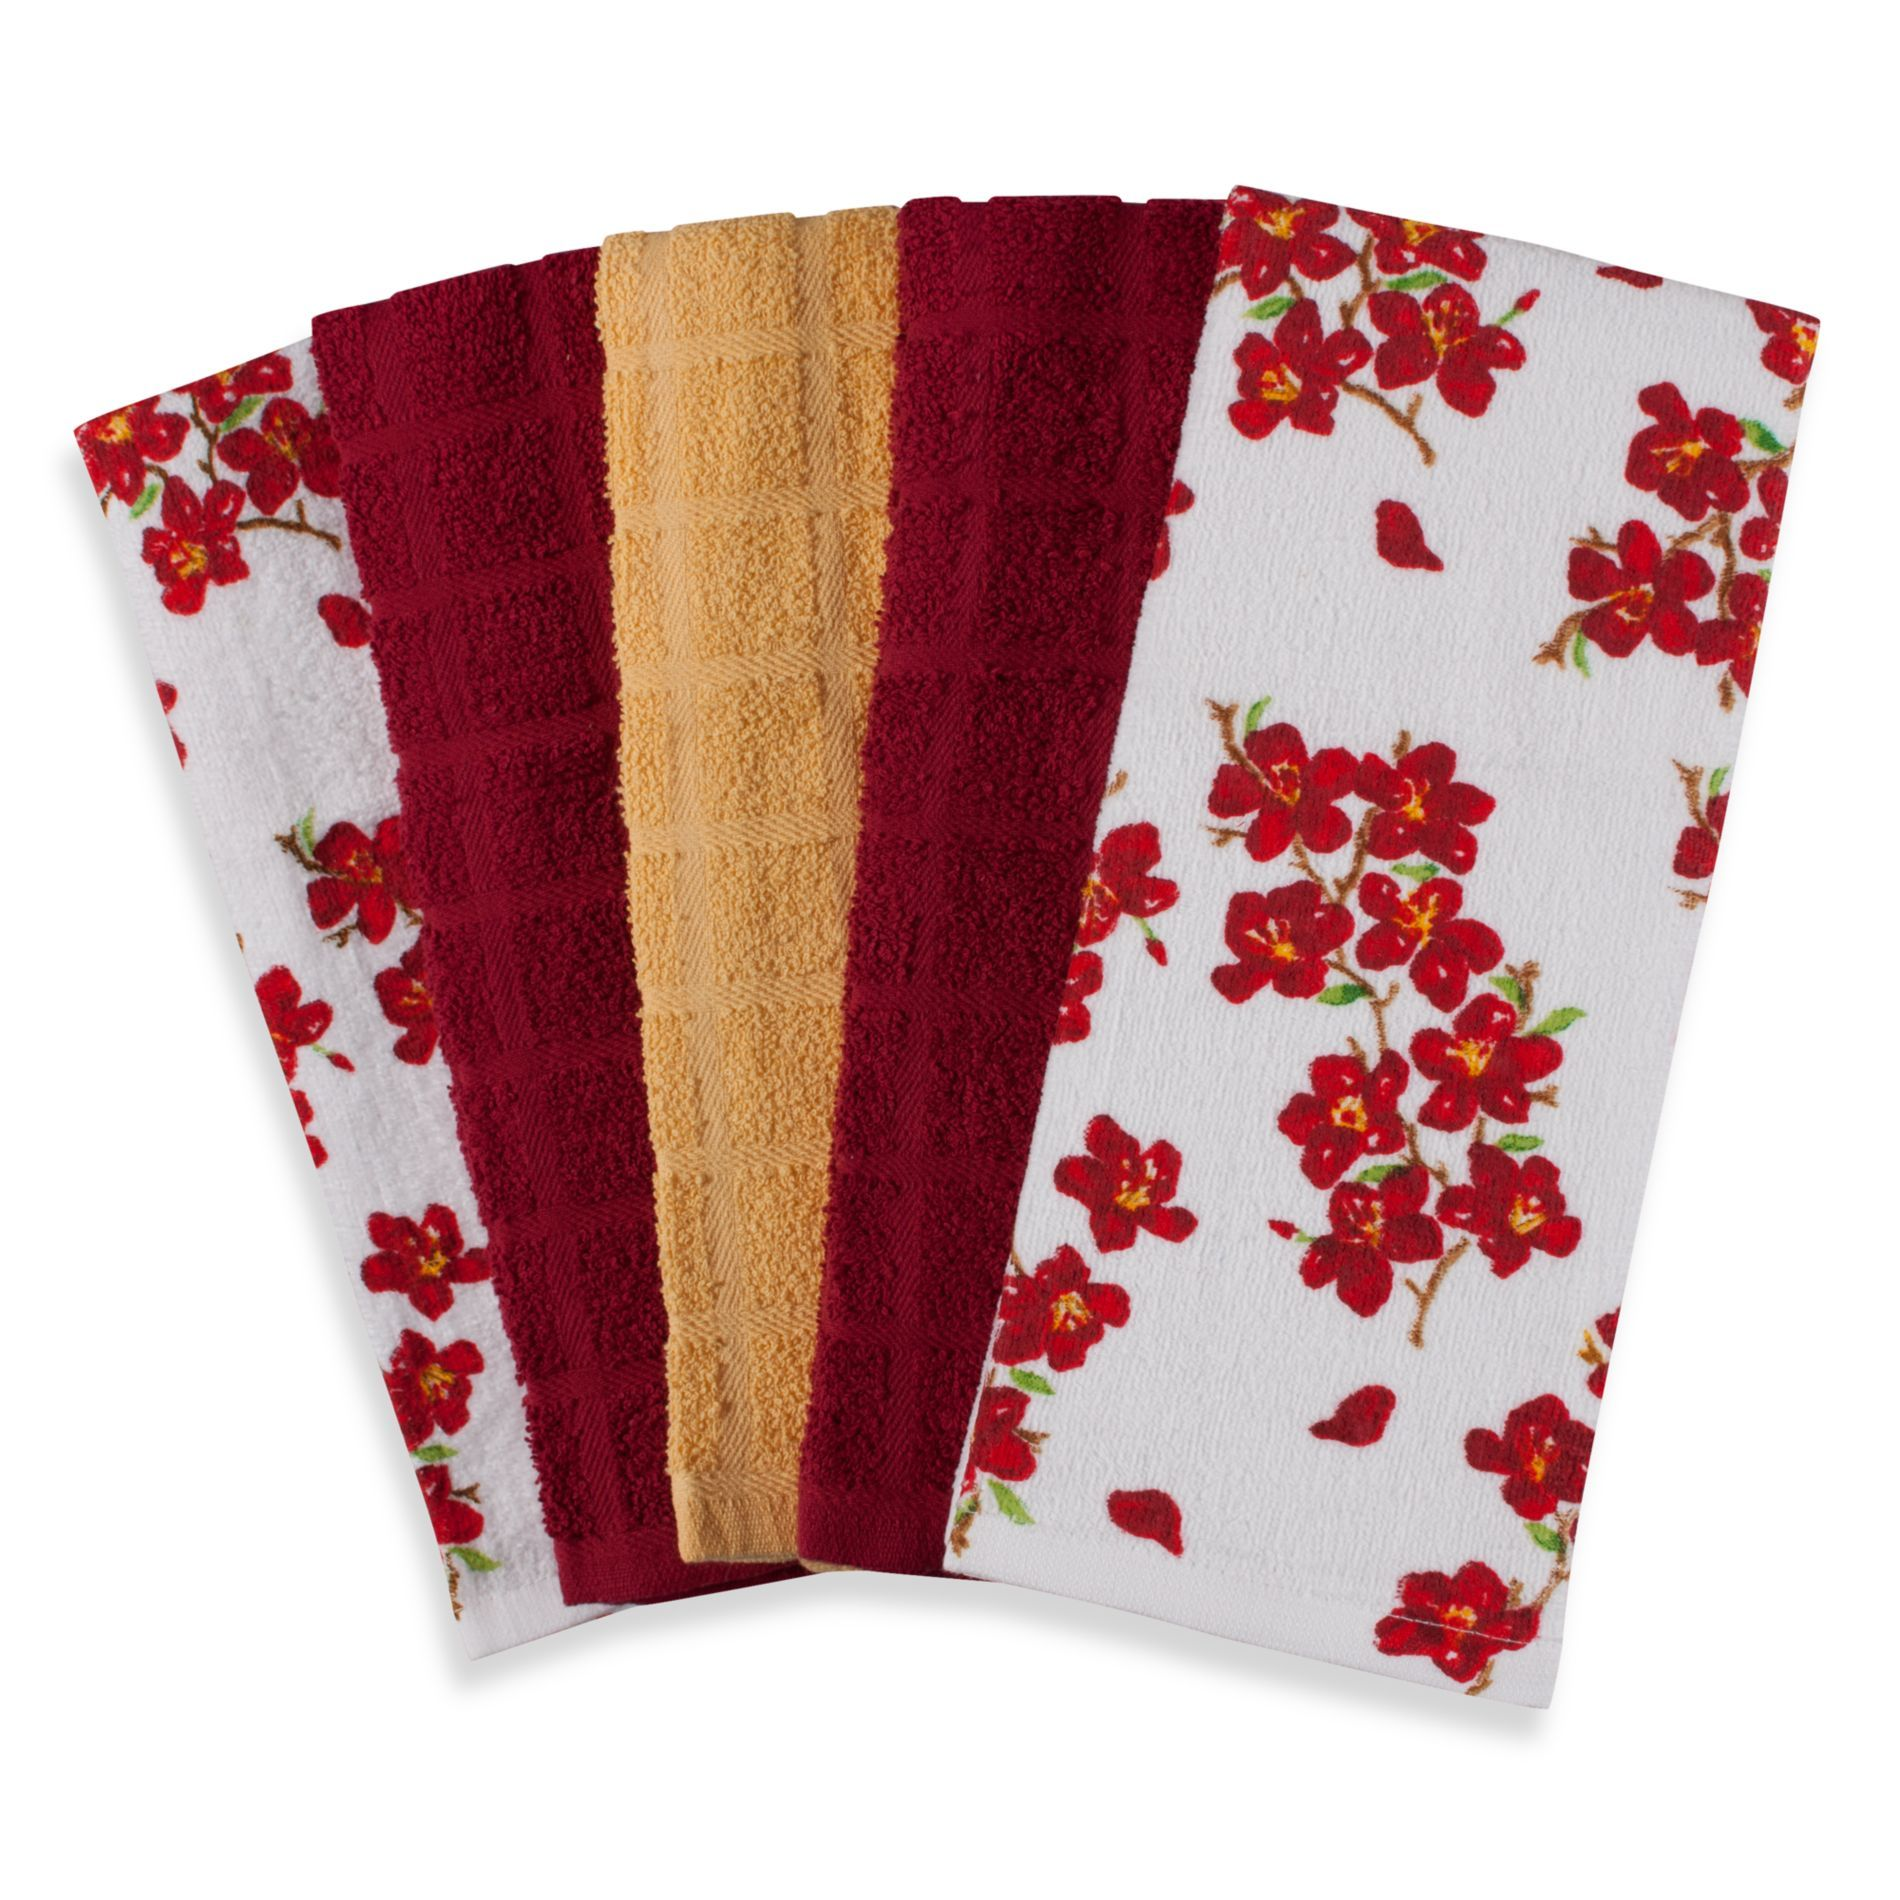 Flower 100% Cotton Terry Cloth Kitchen Towels in 5 Pack